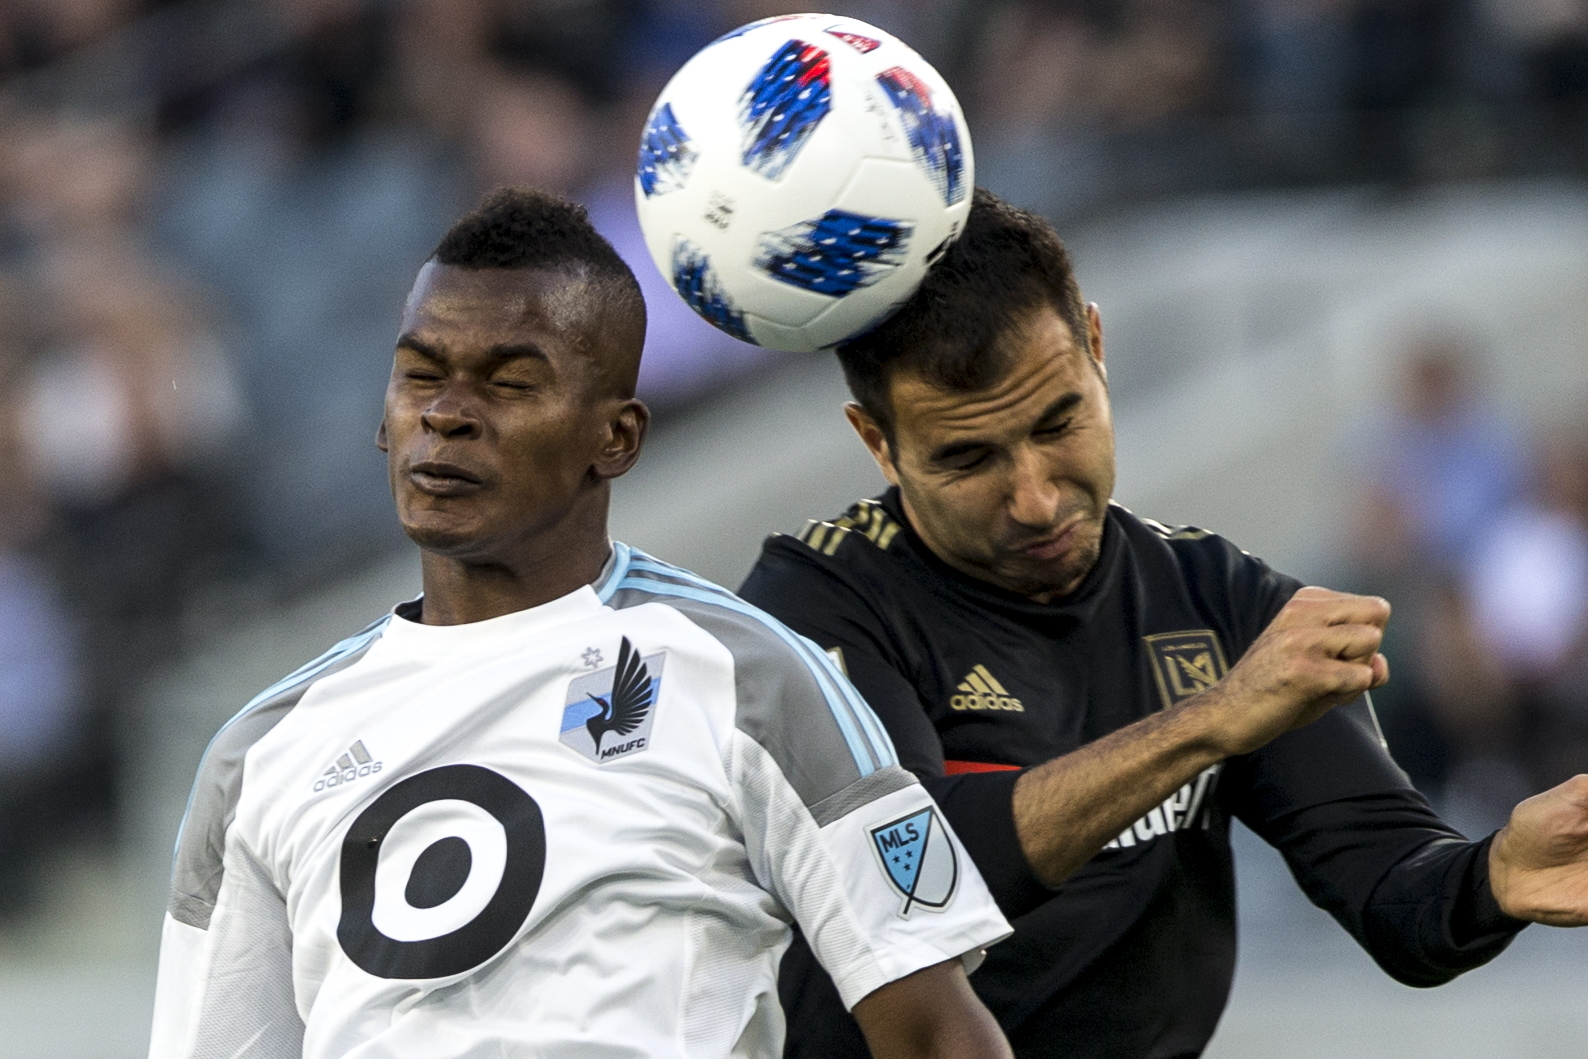 Minnesota United Football Club (MUFC) forward Darwin Quintero (left) battles for a header against Los Angeles Football Club (LAFC) defender Steven Beitashour (right) during their match at Banc of California Stadium on May 9, 2018 where the LAFC won 2-0. (Zane Meyer-Thornton/Corsair Photo)